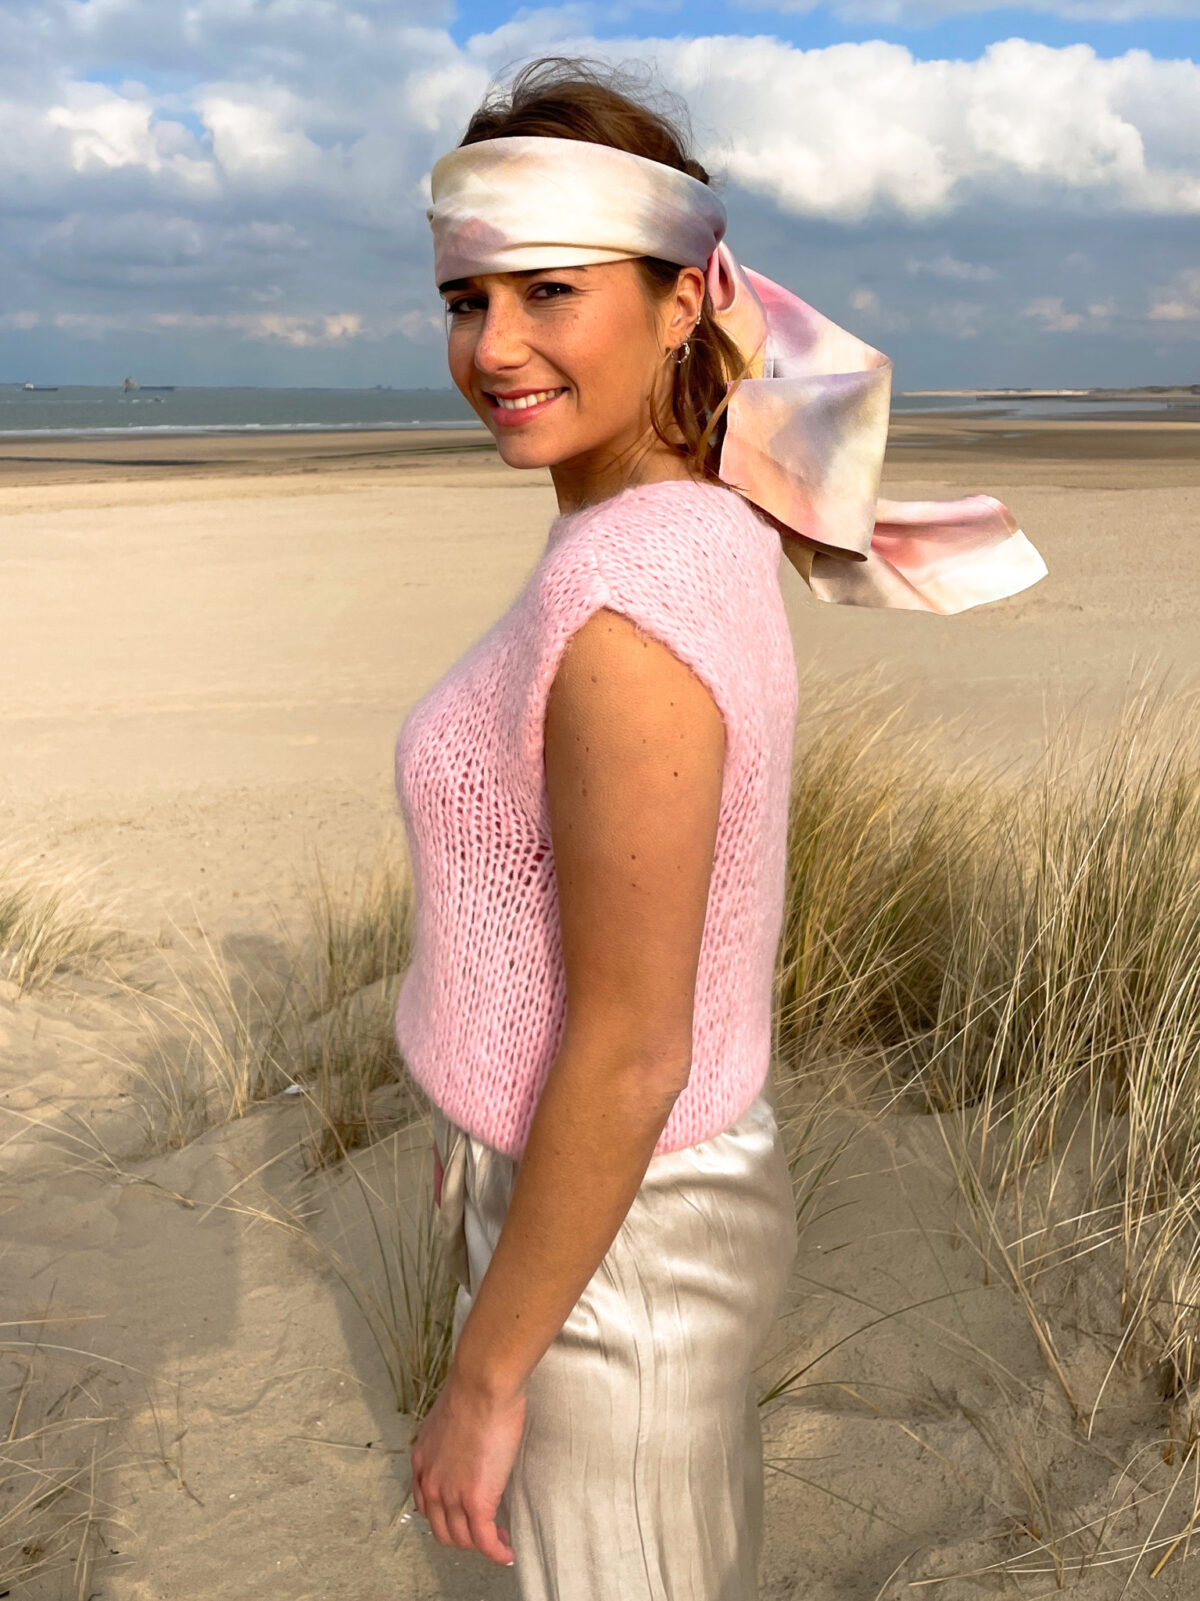 woman with a pink knitted top and a satin scarf on her head